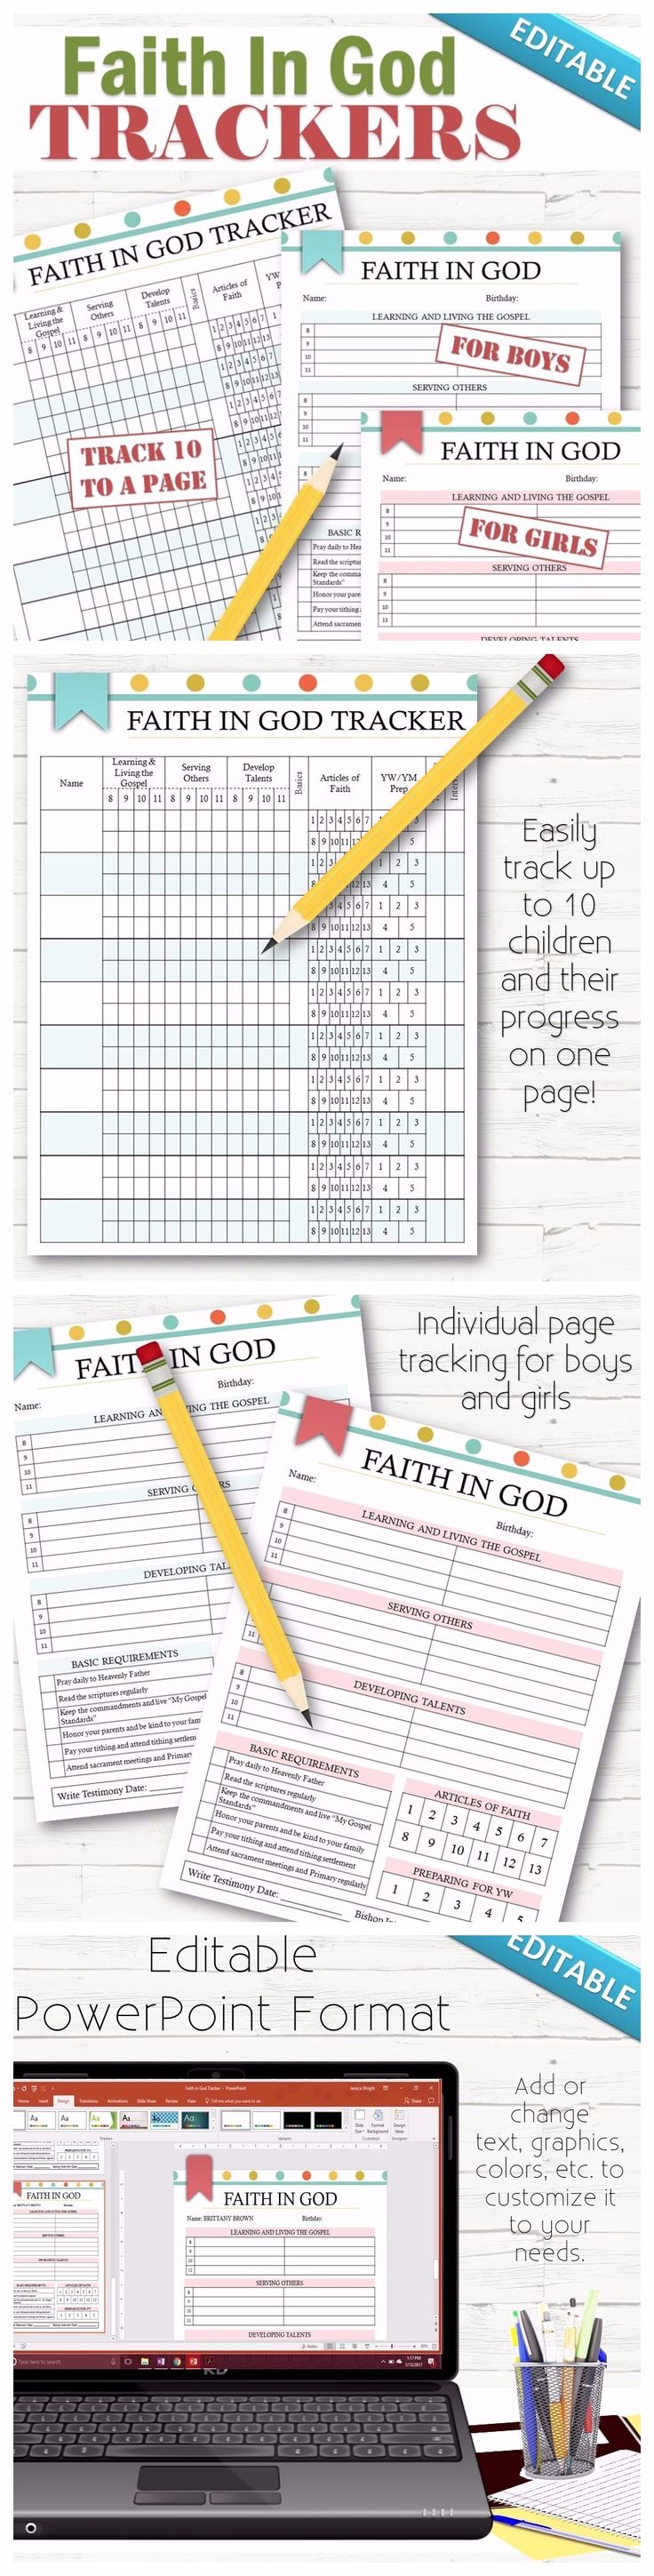 """A simple way to help and keep track of children earning their Faith in God. Track up to 10 children to a page or choose the boy/girl individual page trackers. This comes in a PDF format and completely editable PowerPoint format. You can change the fonts, colors, graphics, sizing, headers, titles, content, etc! Formatted to fit a 8.5""""x11"""" page."""